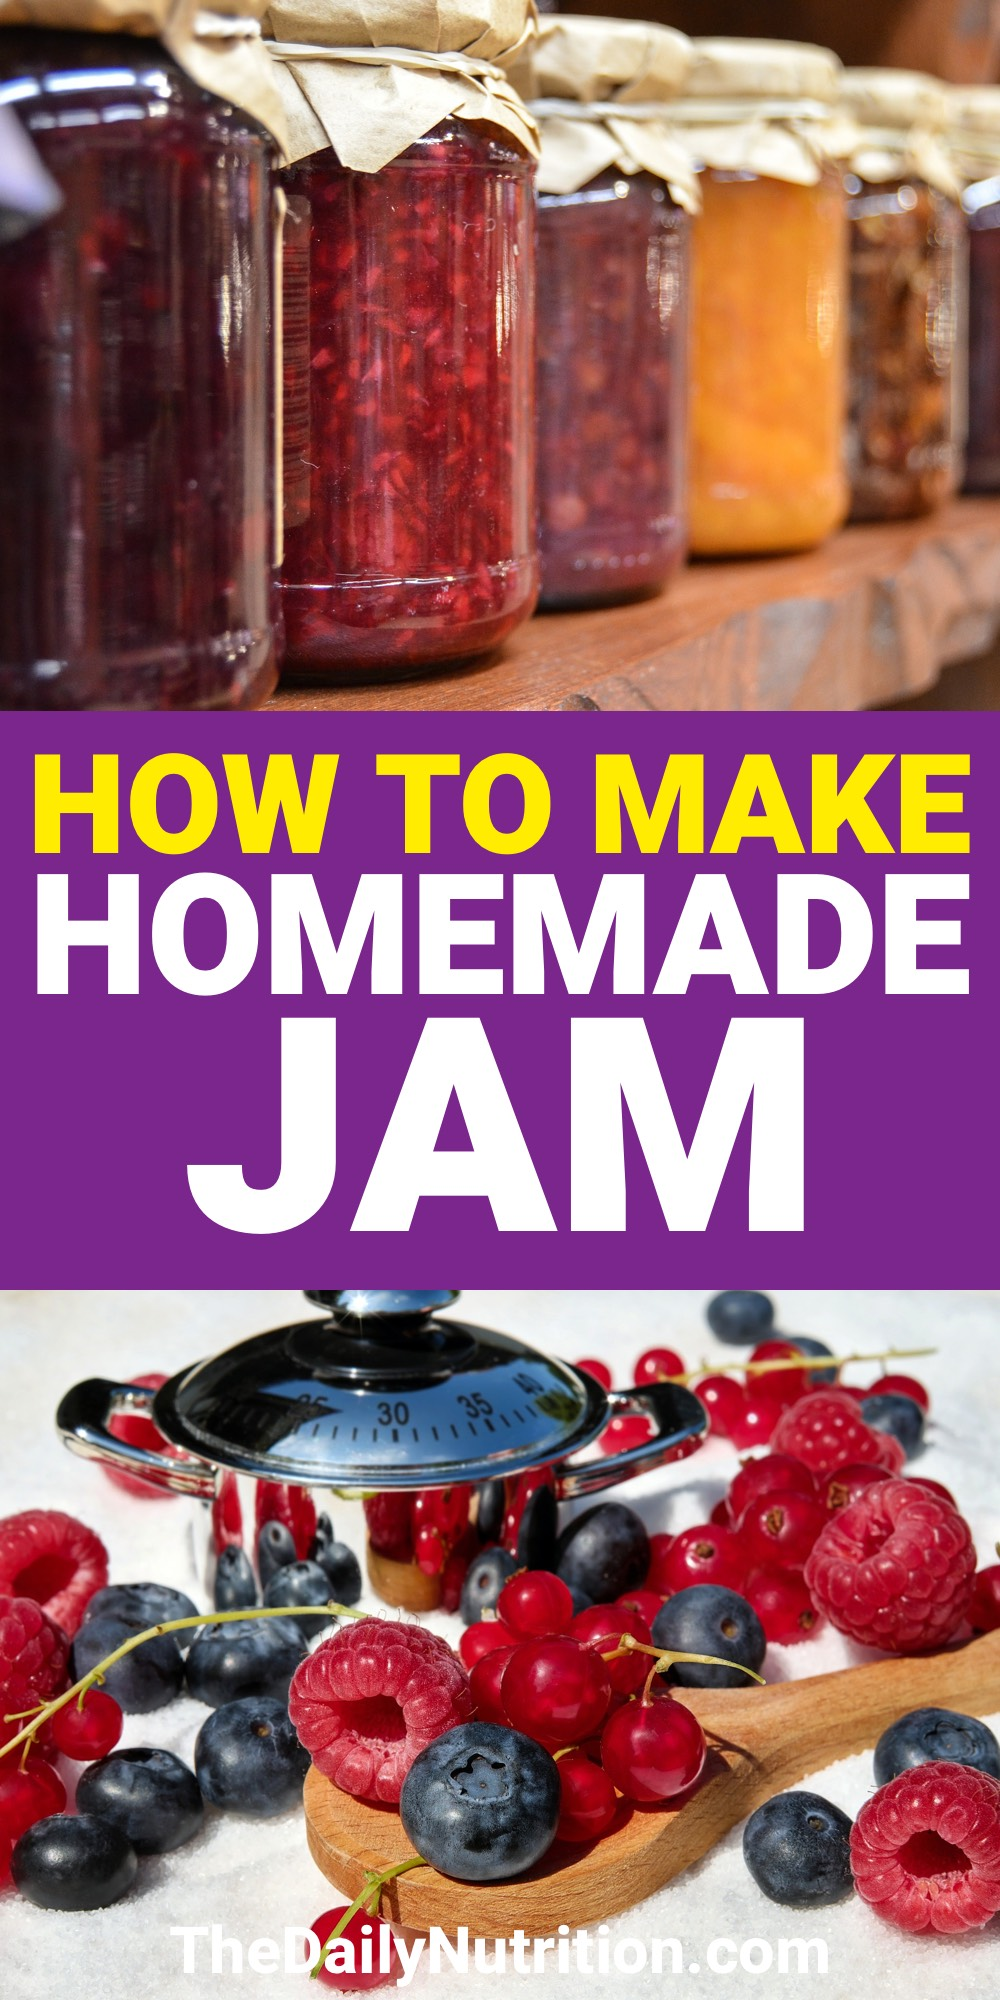 Making homemade jam can be fun and easy. Here is a homemade jam recipe that is fun and easy.